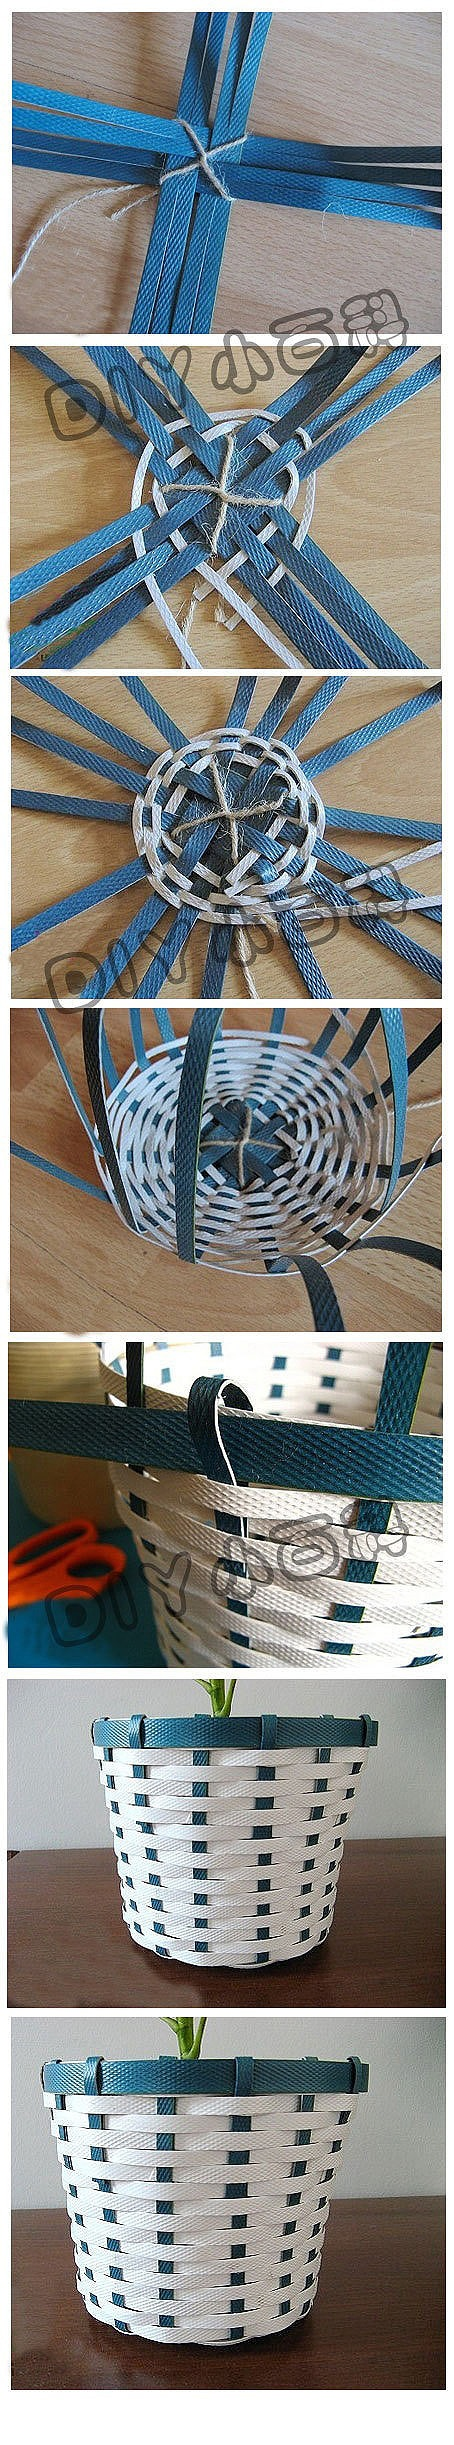 How Long Does It Take To Weave A Basket : Basket weaving craft ideas diy and crafts